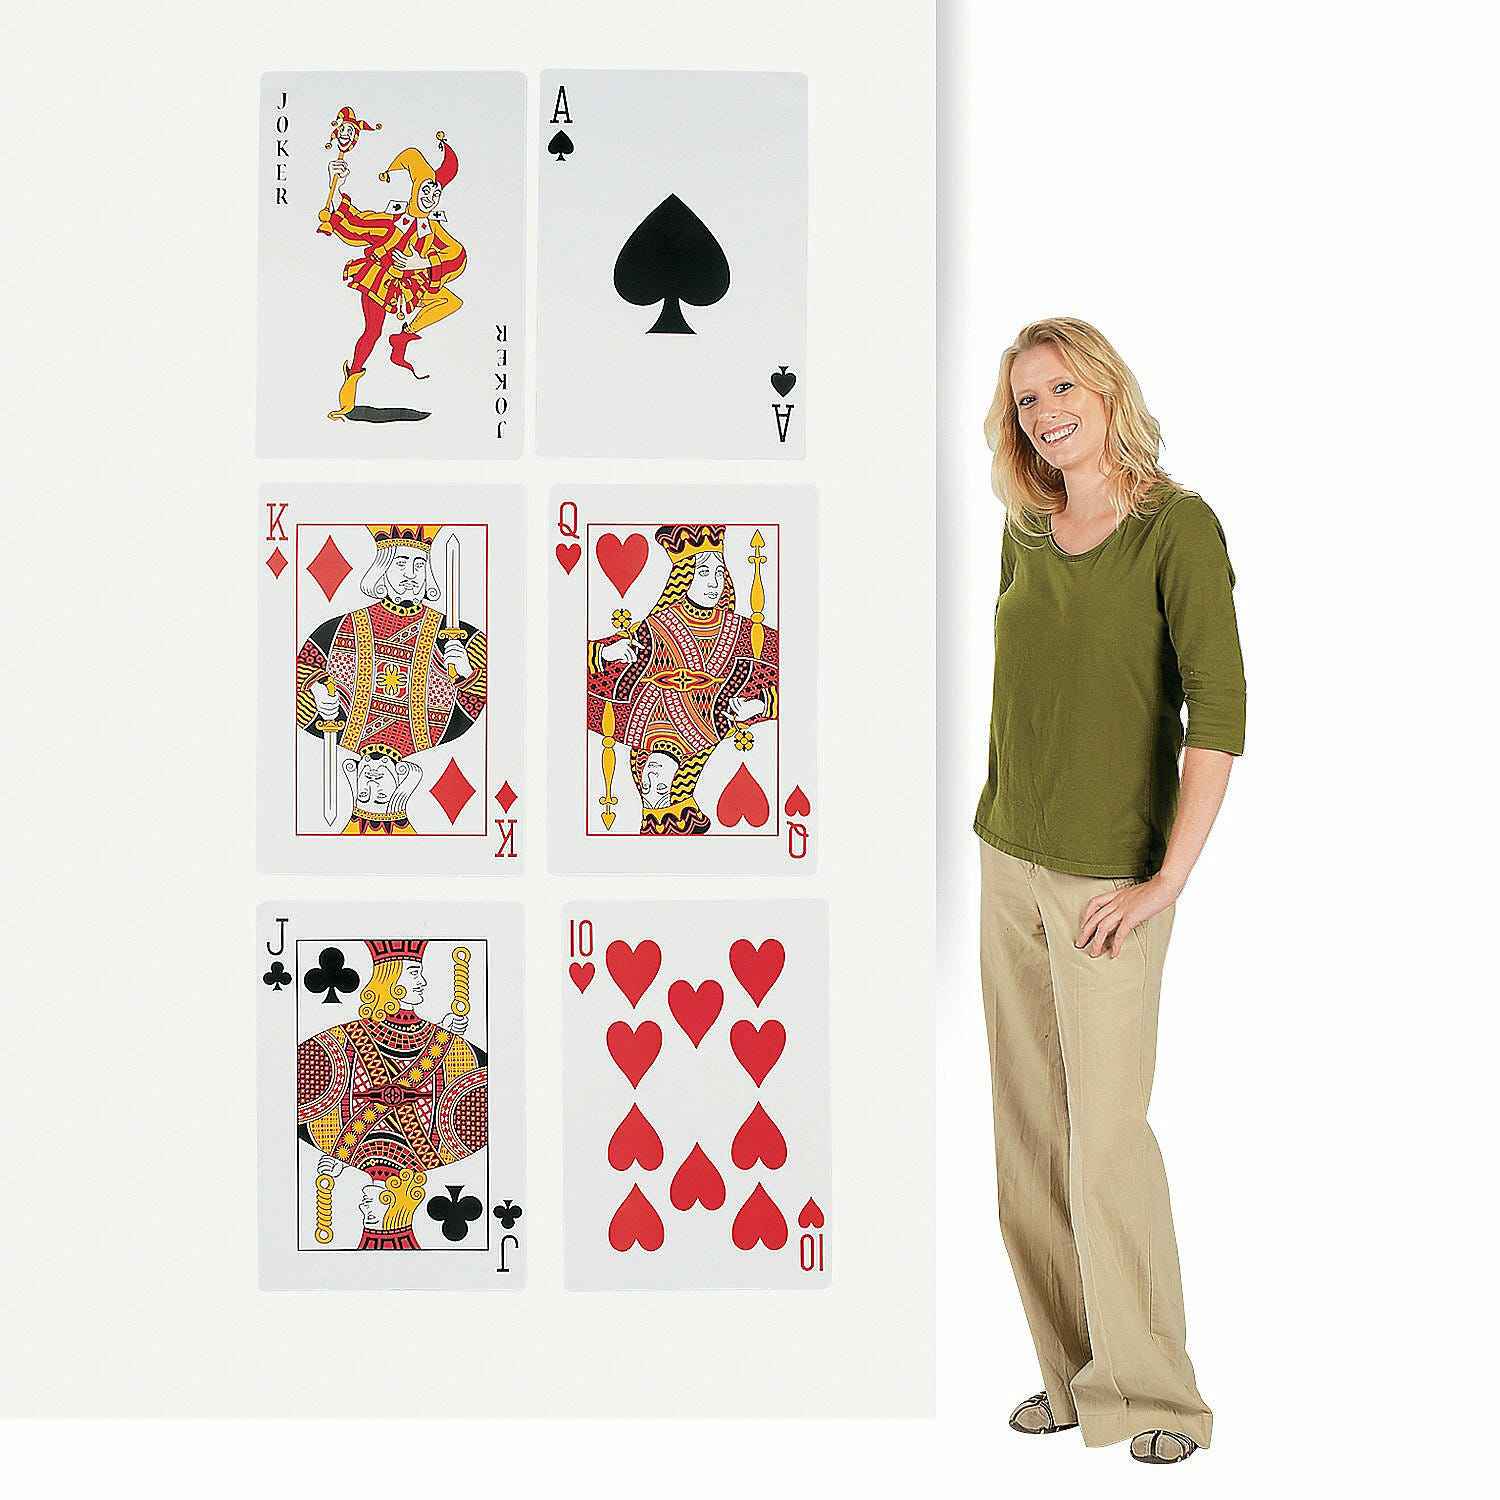 Vegas Casino Party Set Of 6 Cardboard Playing Card Cutouts. House Decorating Games For Girls. Olympic Party Decorations. Blue Decorative Pillows. Grey Living Room Set. Light Room Presets. Hampton Bay Home Decorators Collection. Graduation Party Decorating Ideas. Fabric Room Dividers